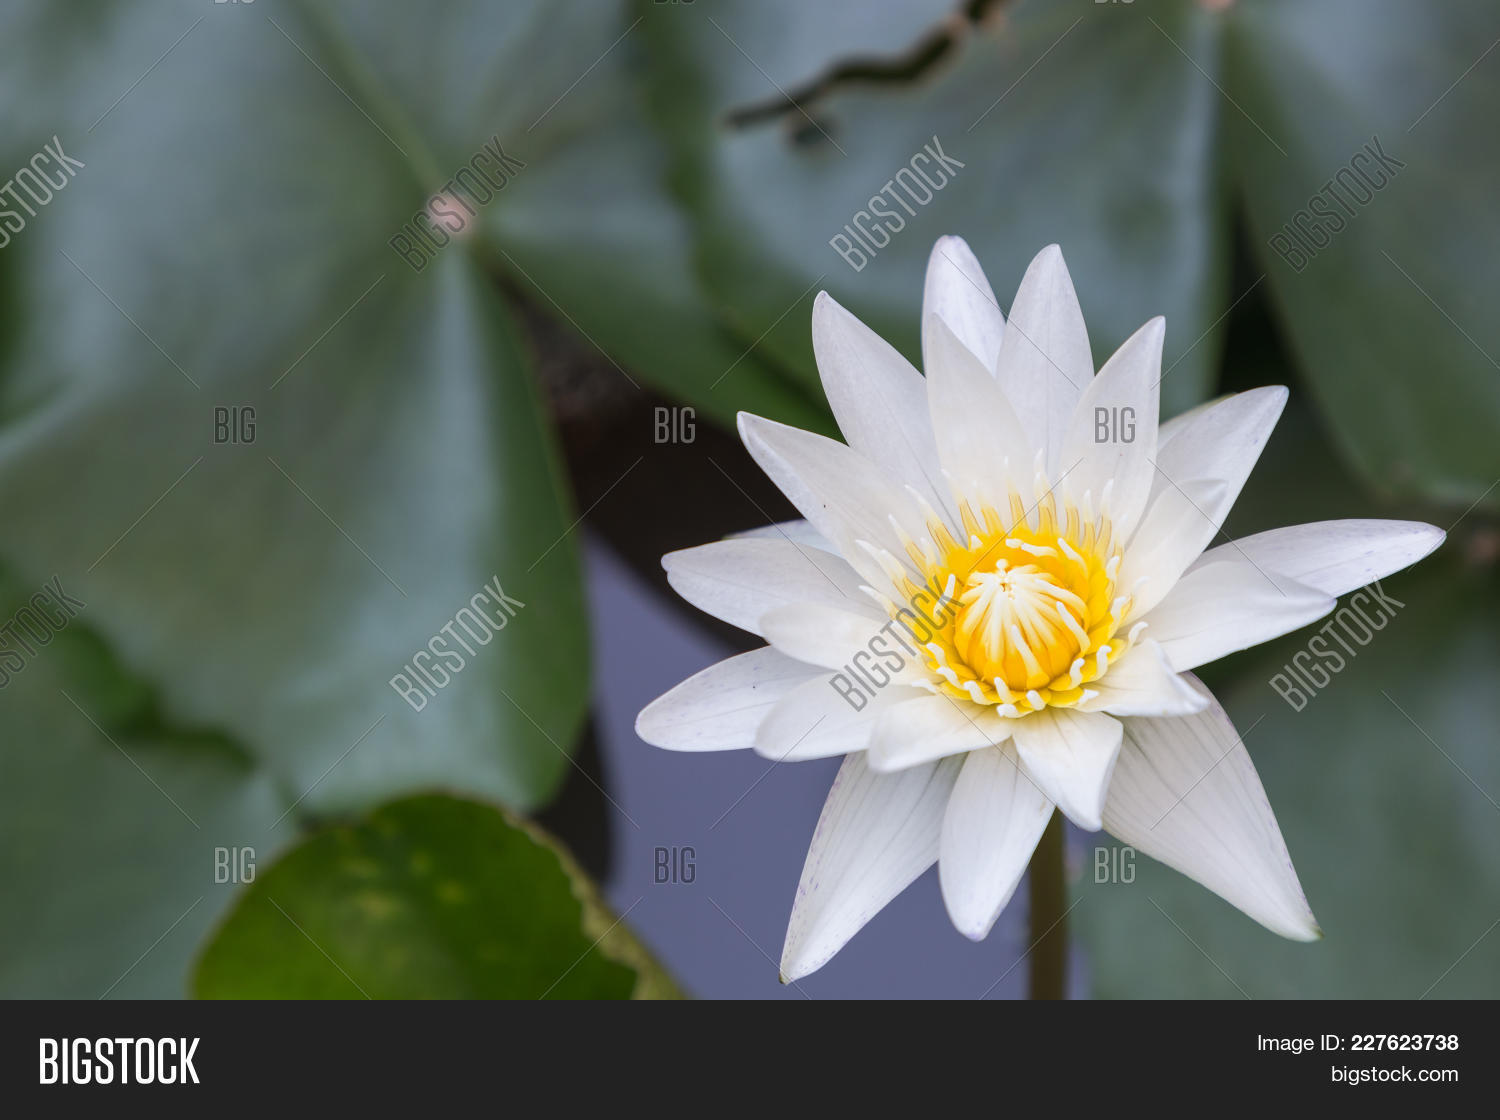 Lotus flower water image photo free trial bigstock lotus flower or water lily flower blooming with lotus leaves background in the pond at sunny izmirmasajfo